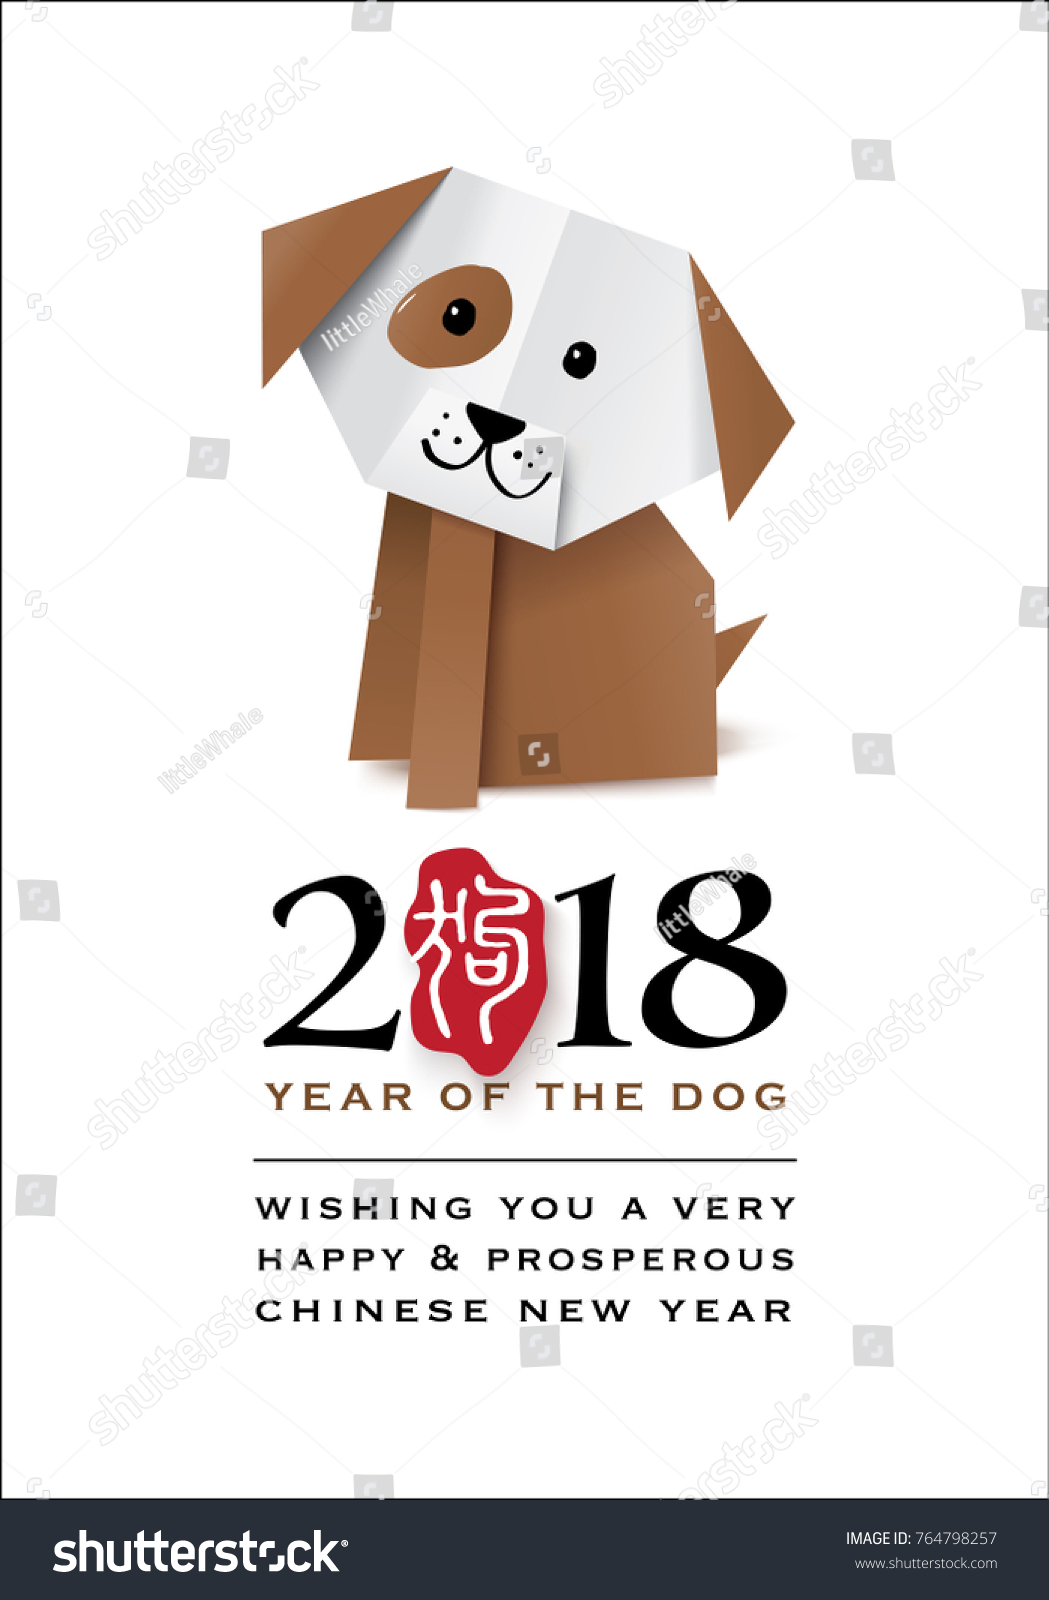 2018 Chinese New Year Greeting Card Stock Vector (Royalty Free ...